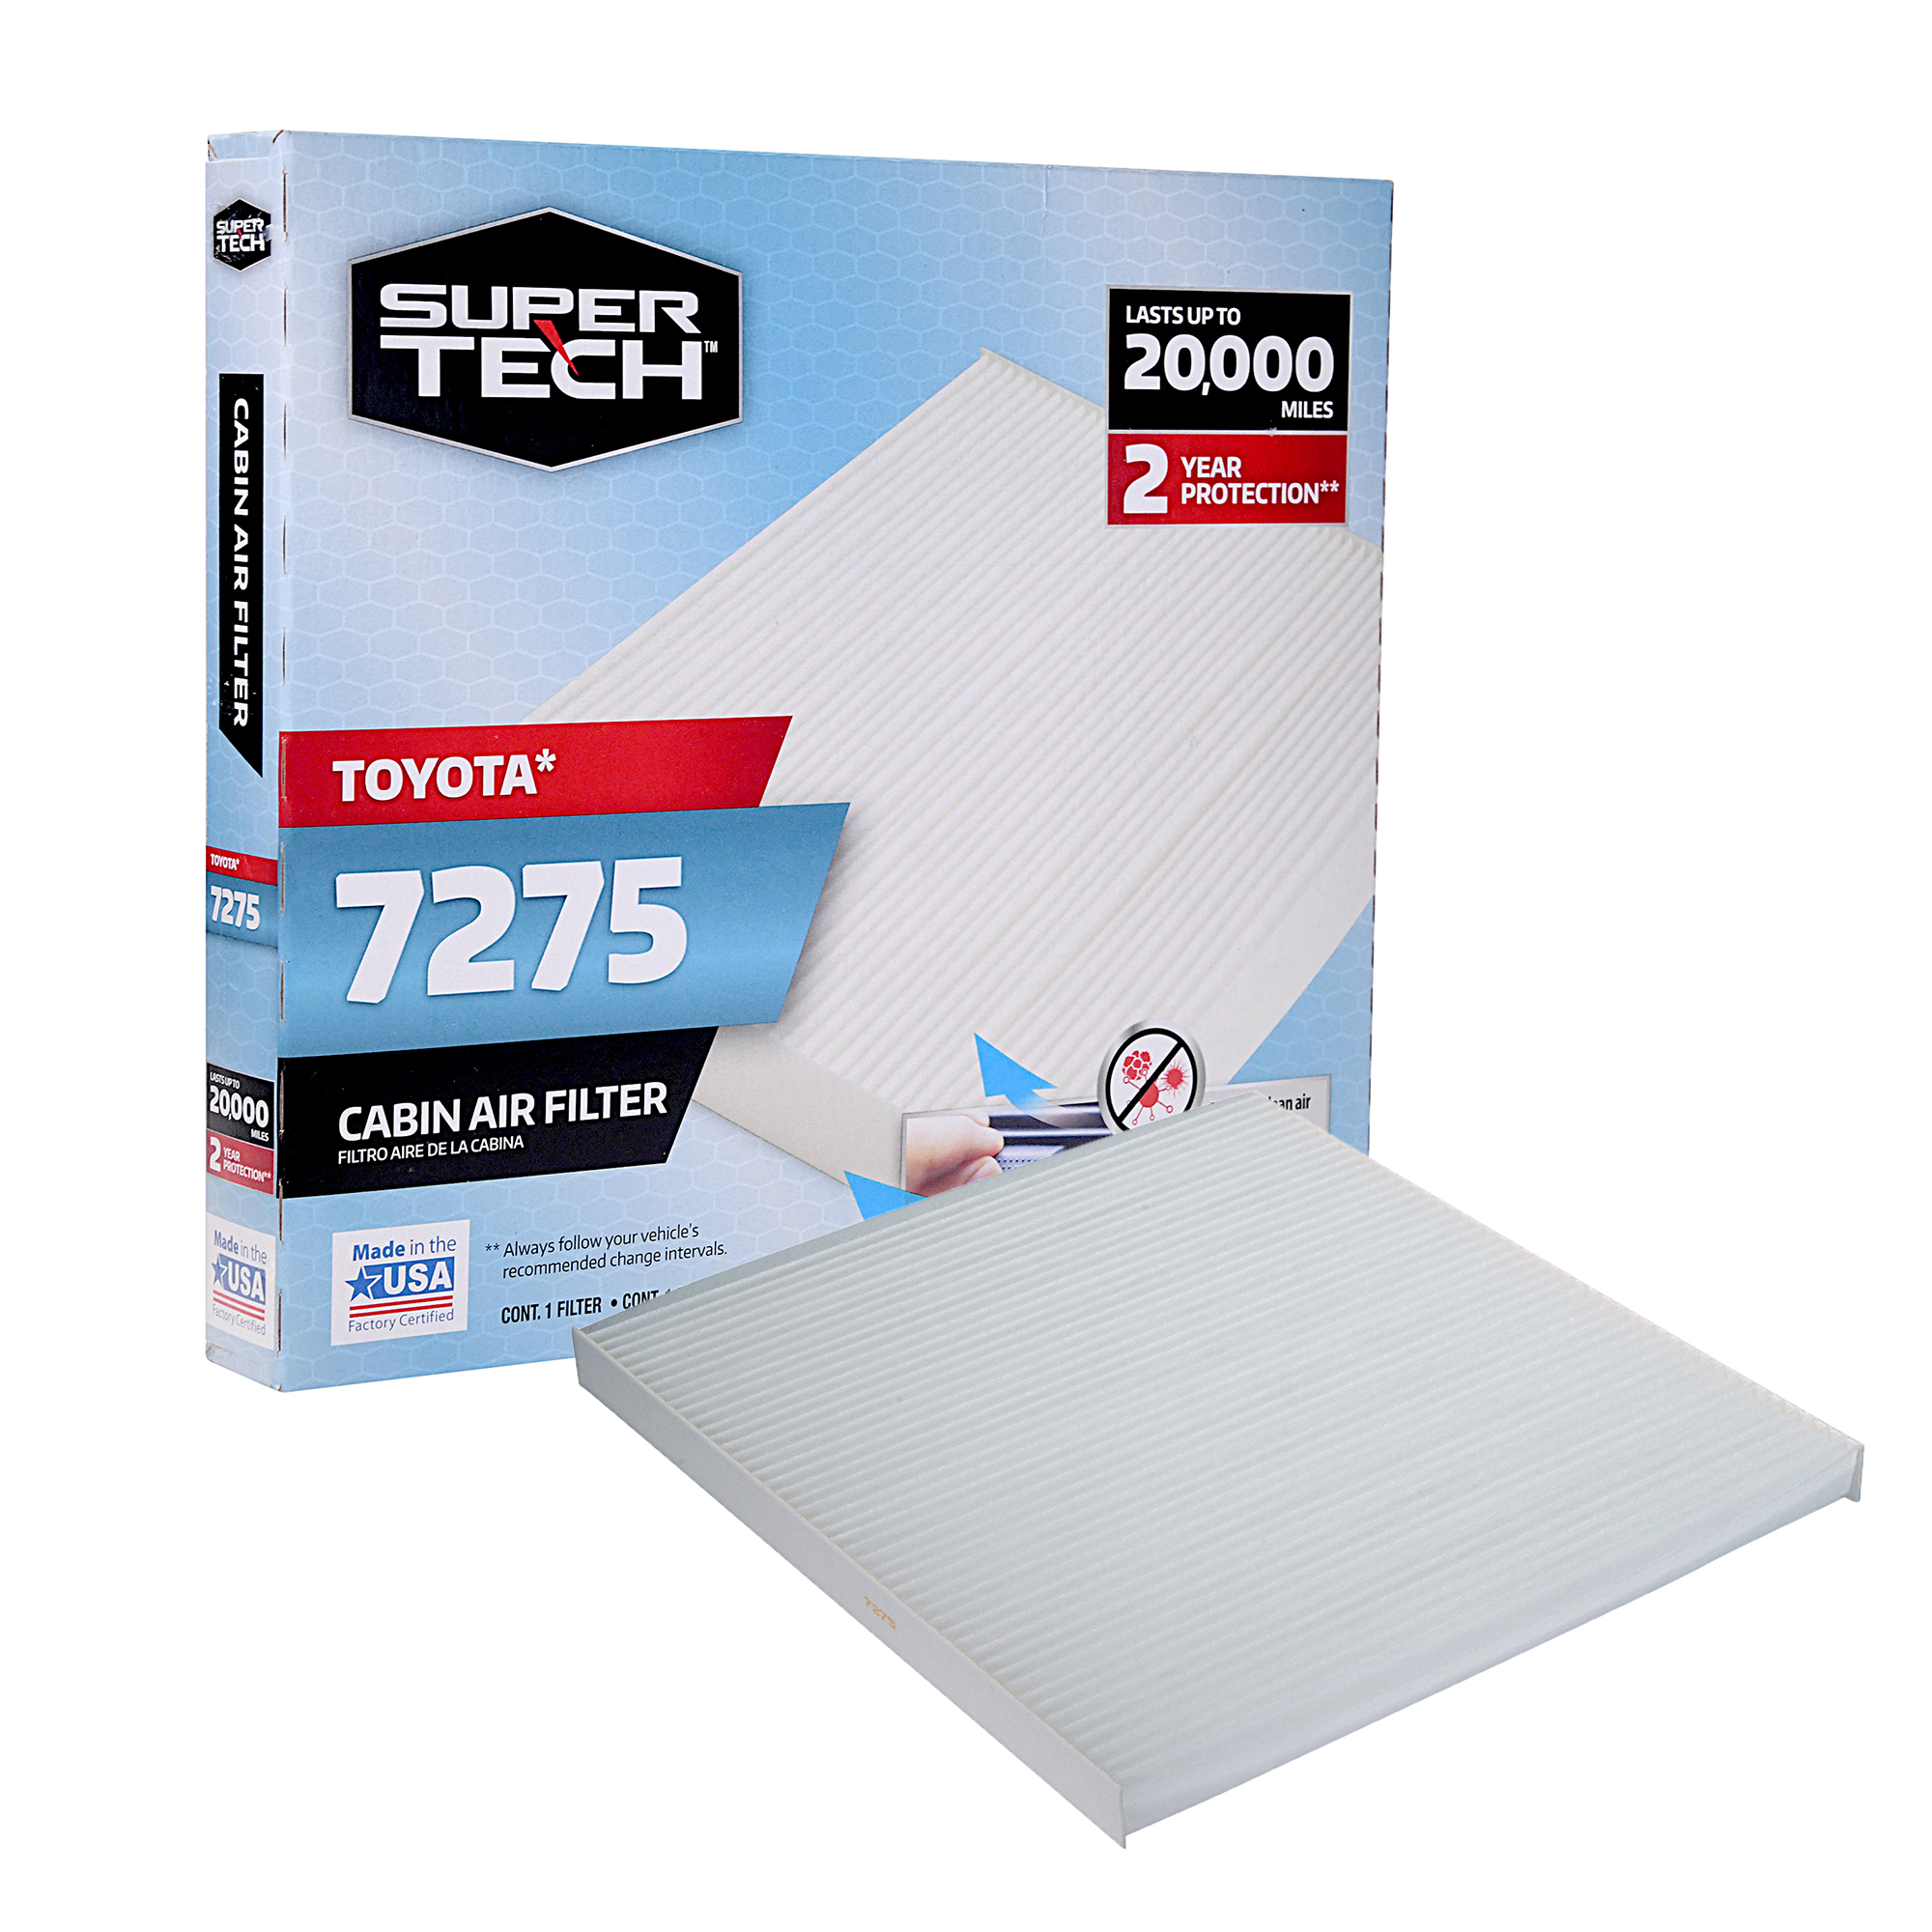 SuperTech Cabin Air Filter 7275, Replacement Air/Dust Filter for Toyota